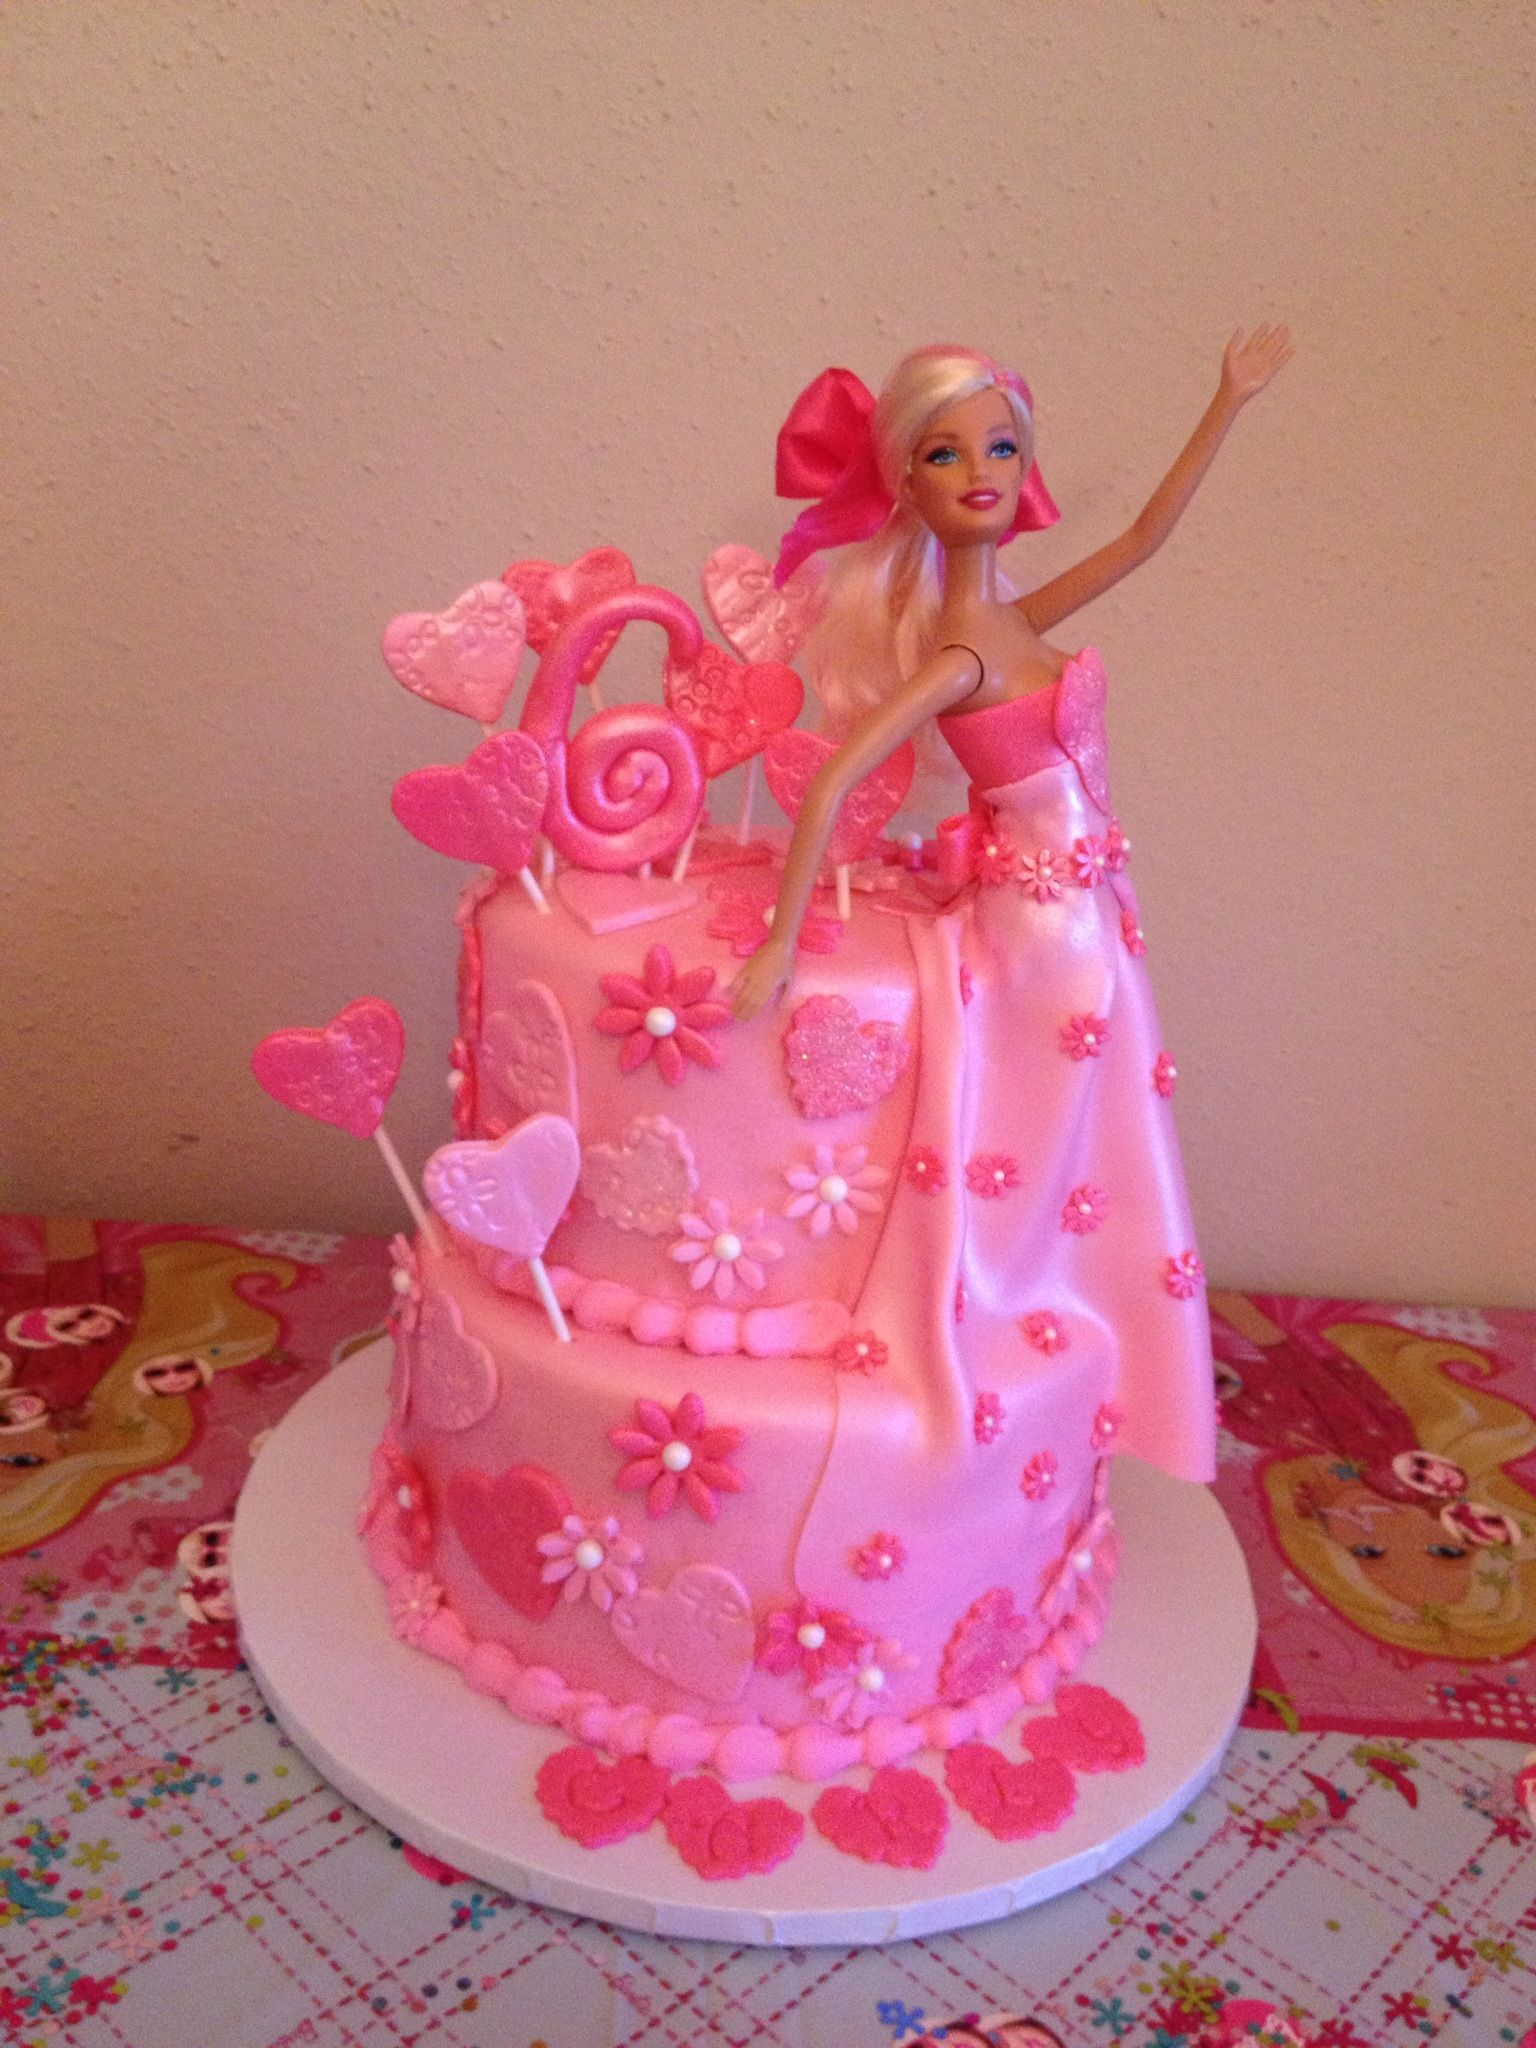 Pink Barbie Cake With Pink Hearts And Flowers